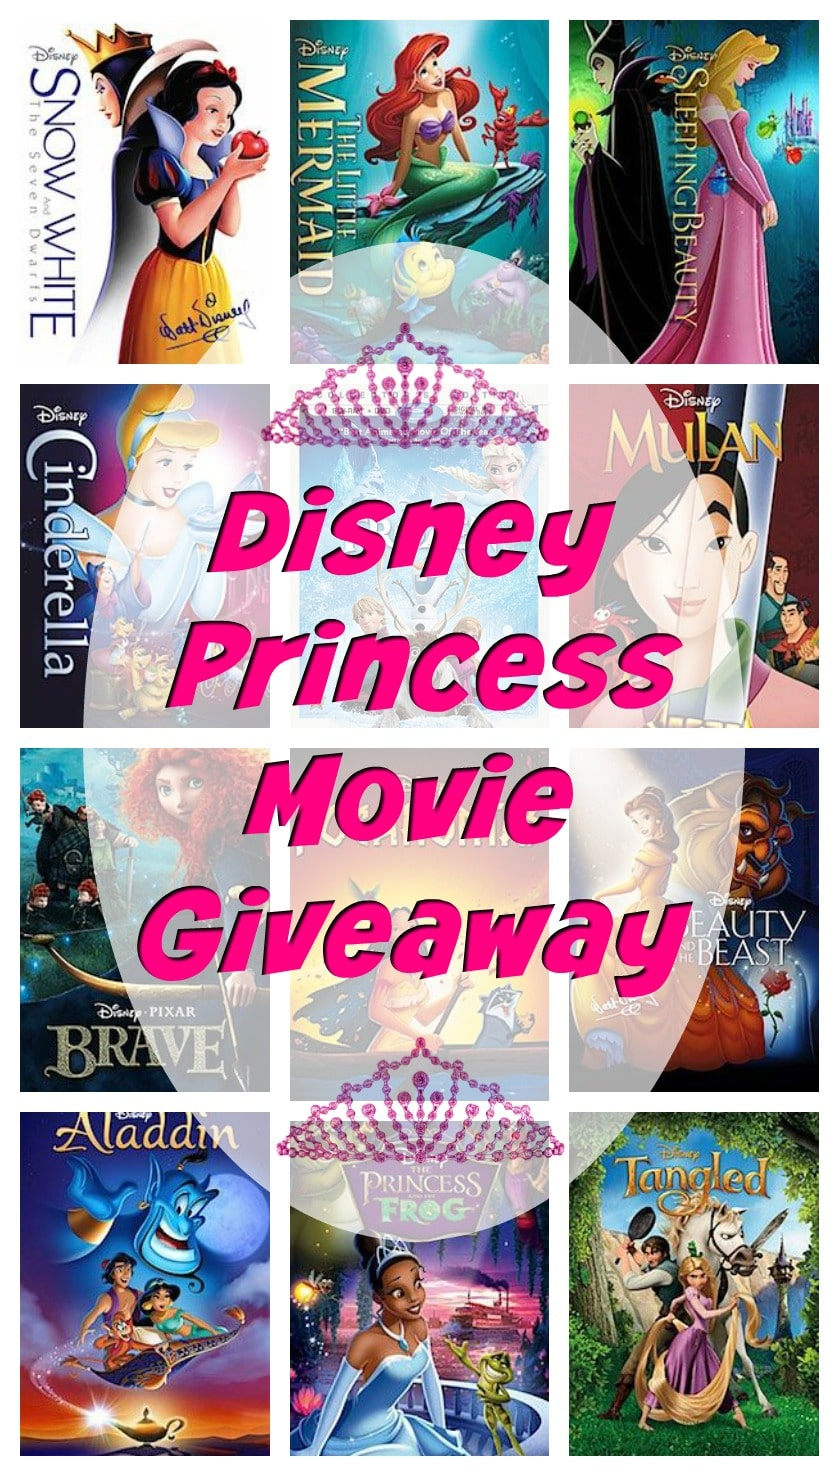 In honor of Disney's release of the Disney Princess Movie Collection Films from the vault at the same time, I have teamed up with a great group of bloggers to offer you this amazing giveaway. We have the complete Disney Princess Movie Collection available for you to win. All of the following Disney Princess Films are out of the vault until October 17th. So hurry and enter to win below and make sure you pick up your copies before they go back in the vault.